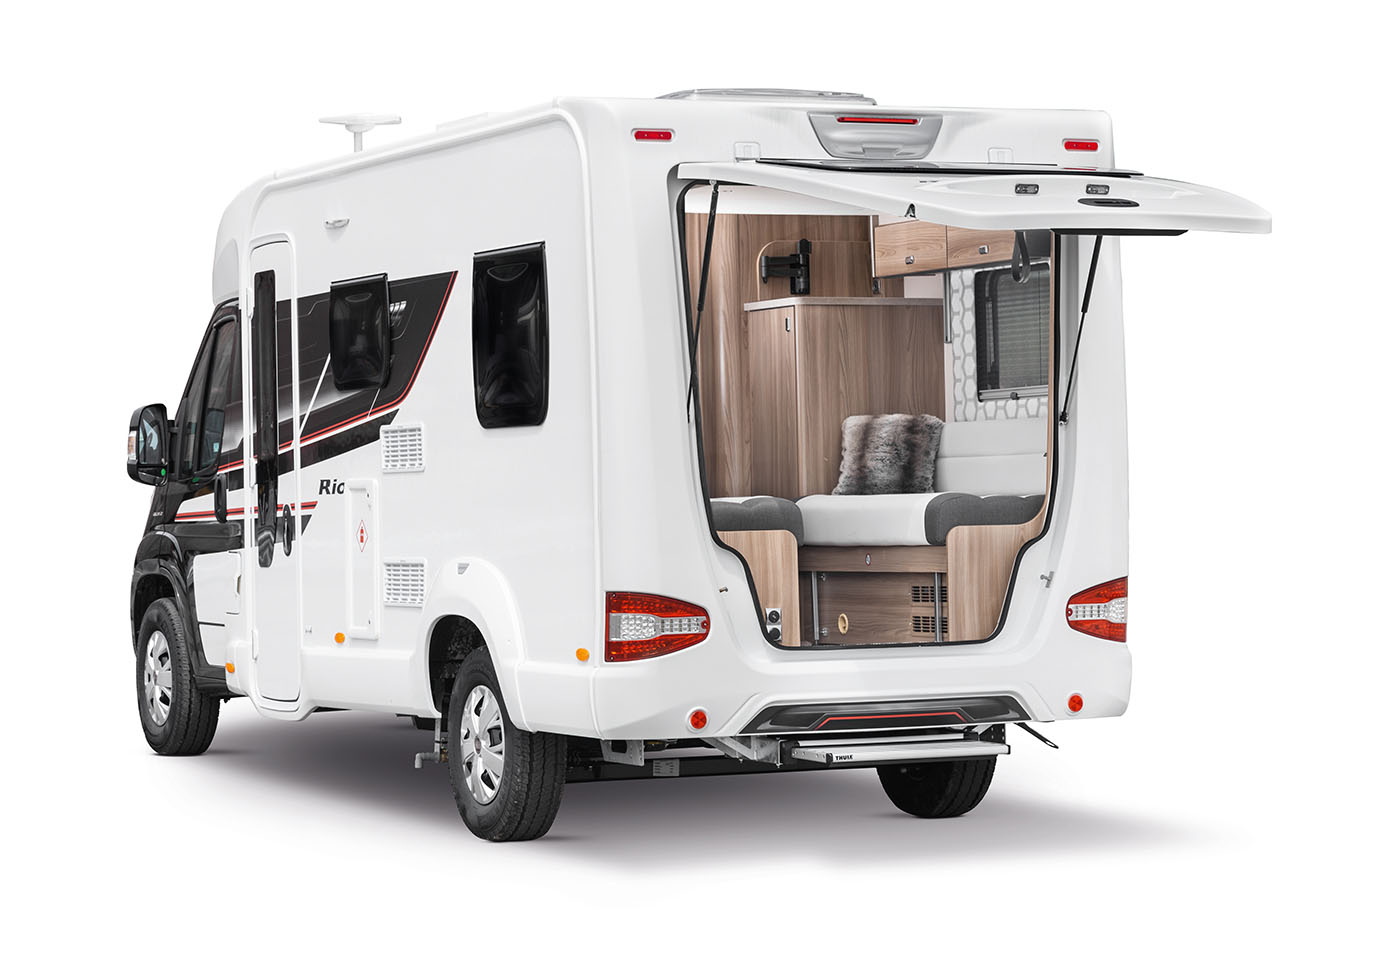 [EXT]-Rio-340-Rear-View-with-Tail-Gate-Open-[SWIFT]